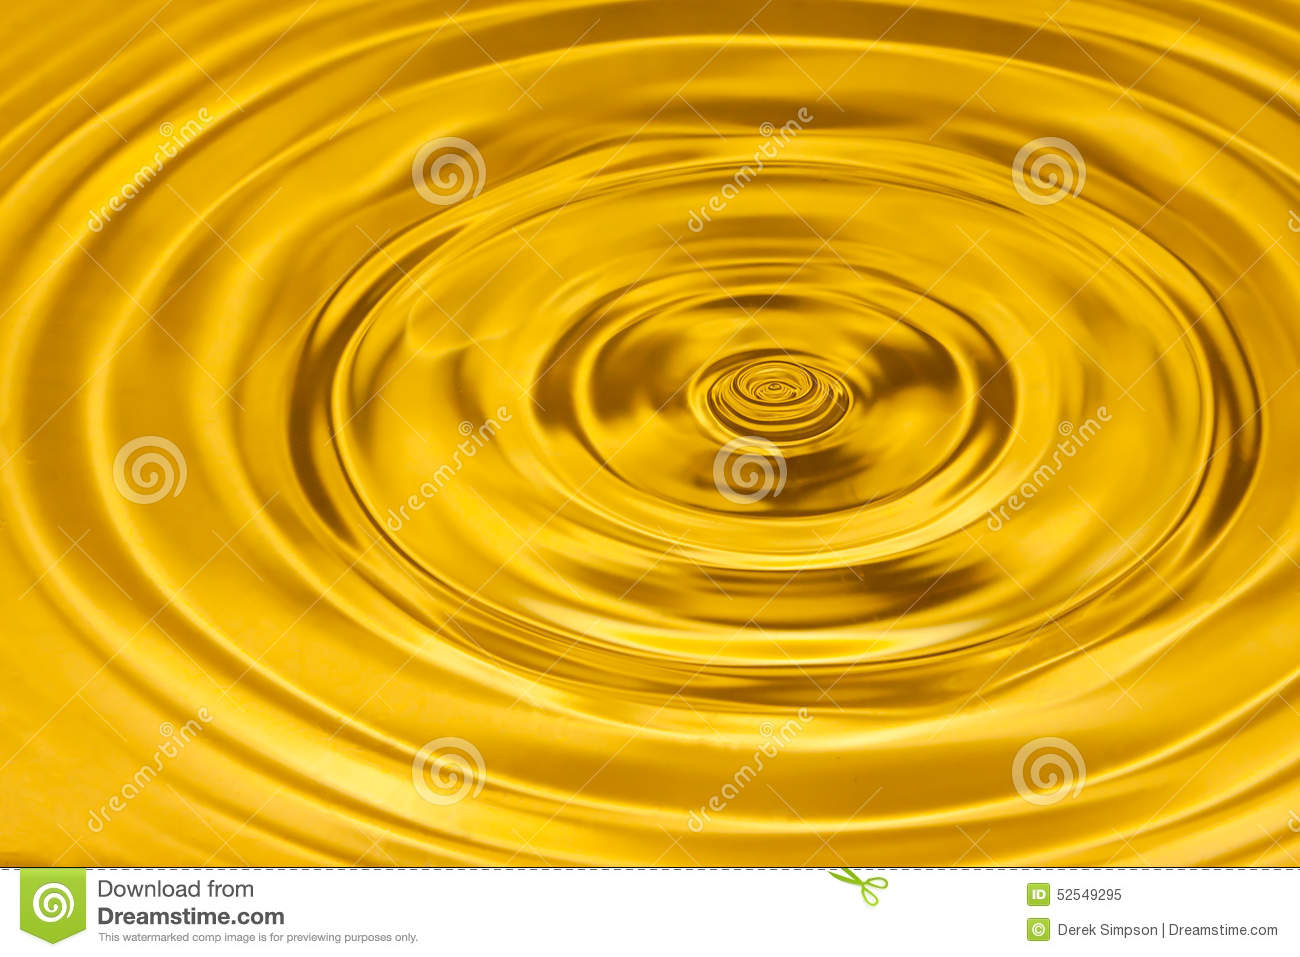 Gold Water Texture Royalty Free Stock Photography - Image: 4759577